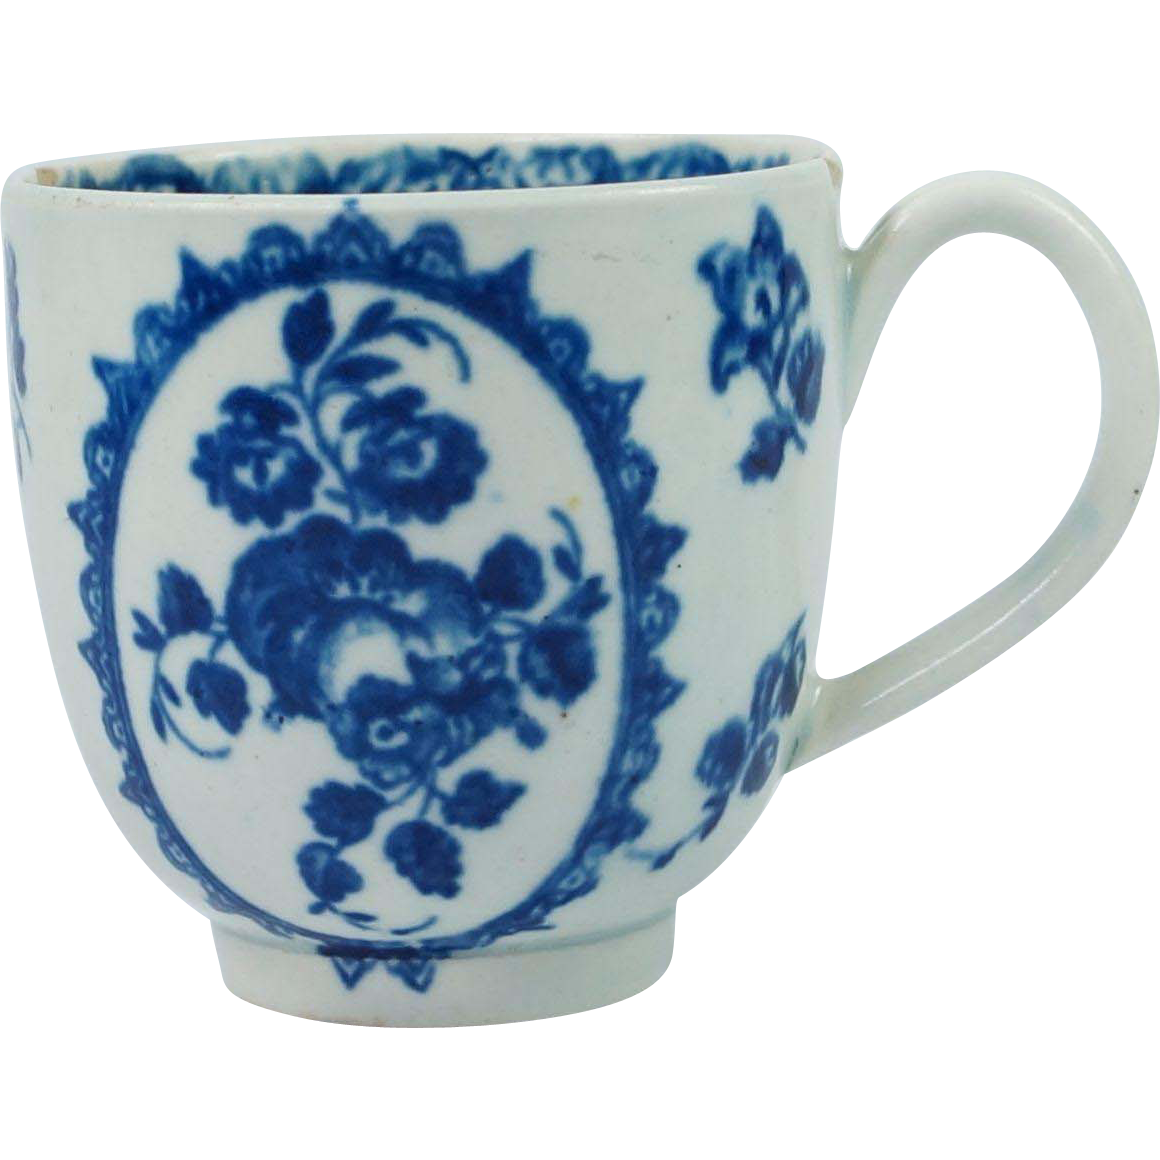 Antique 18th Century Early Worcester Porcelain Cup Blue and White Fruit And Wreath Pattern English Circa 1775 First Period